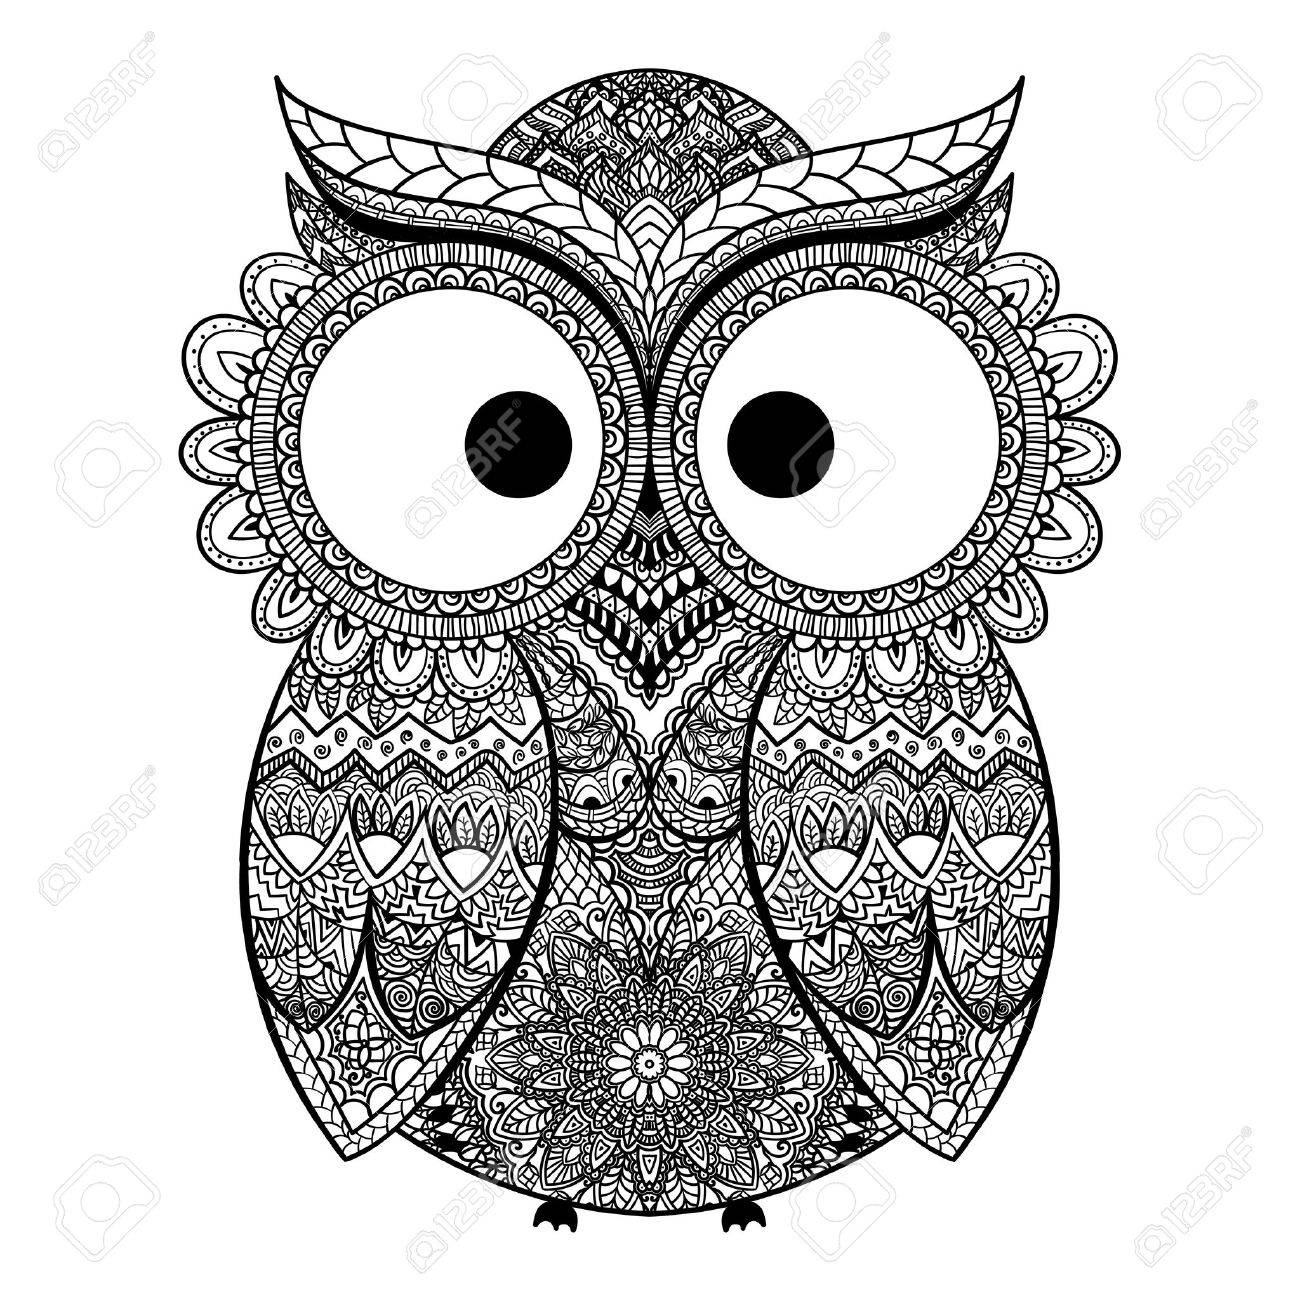 vector illustration of owl bird illustrated in tribal owl whith